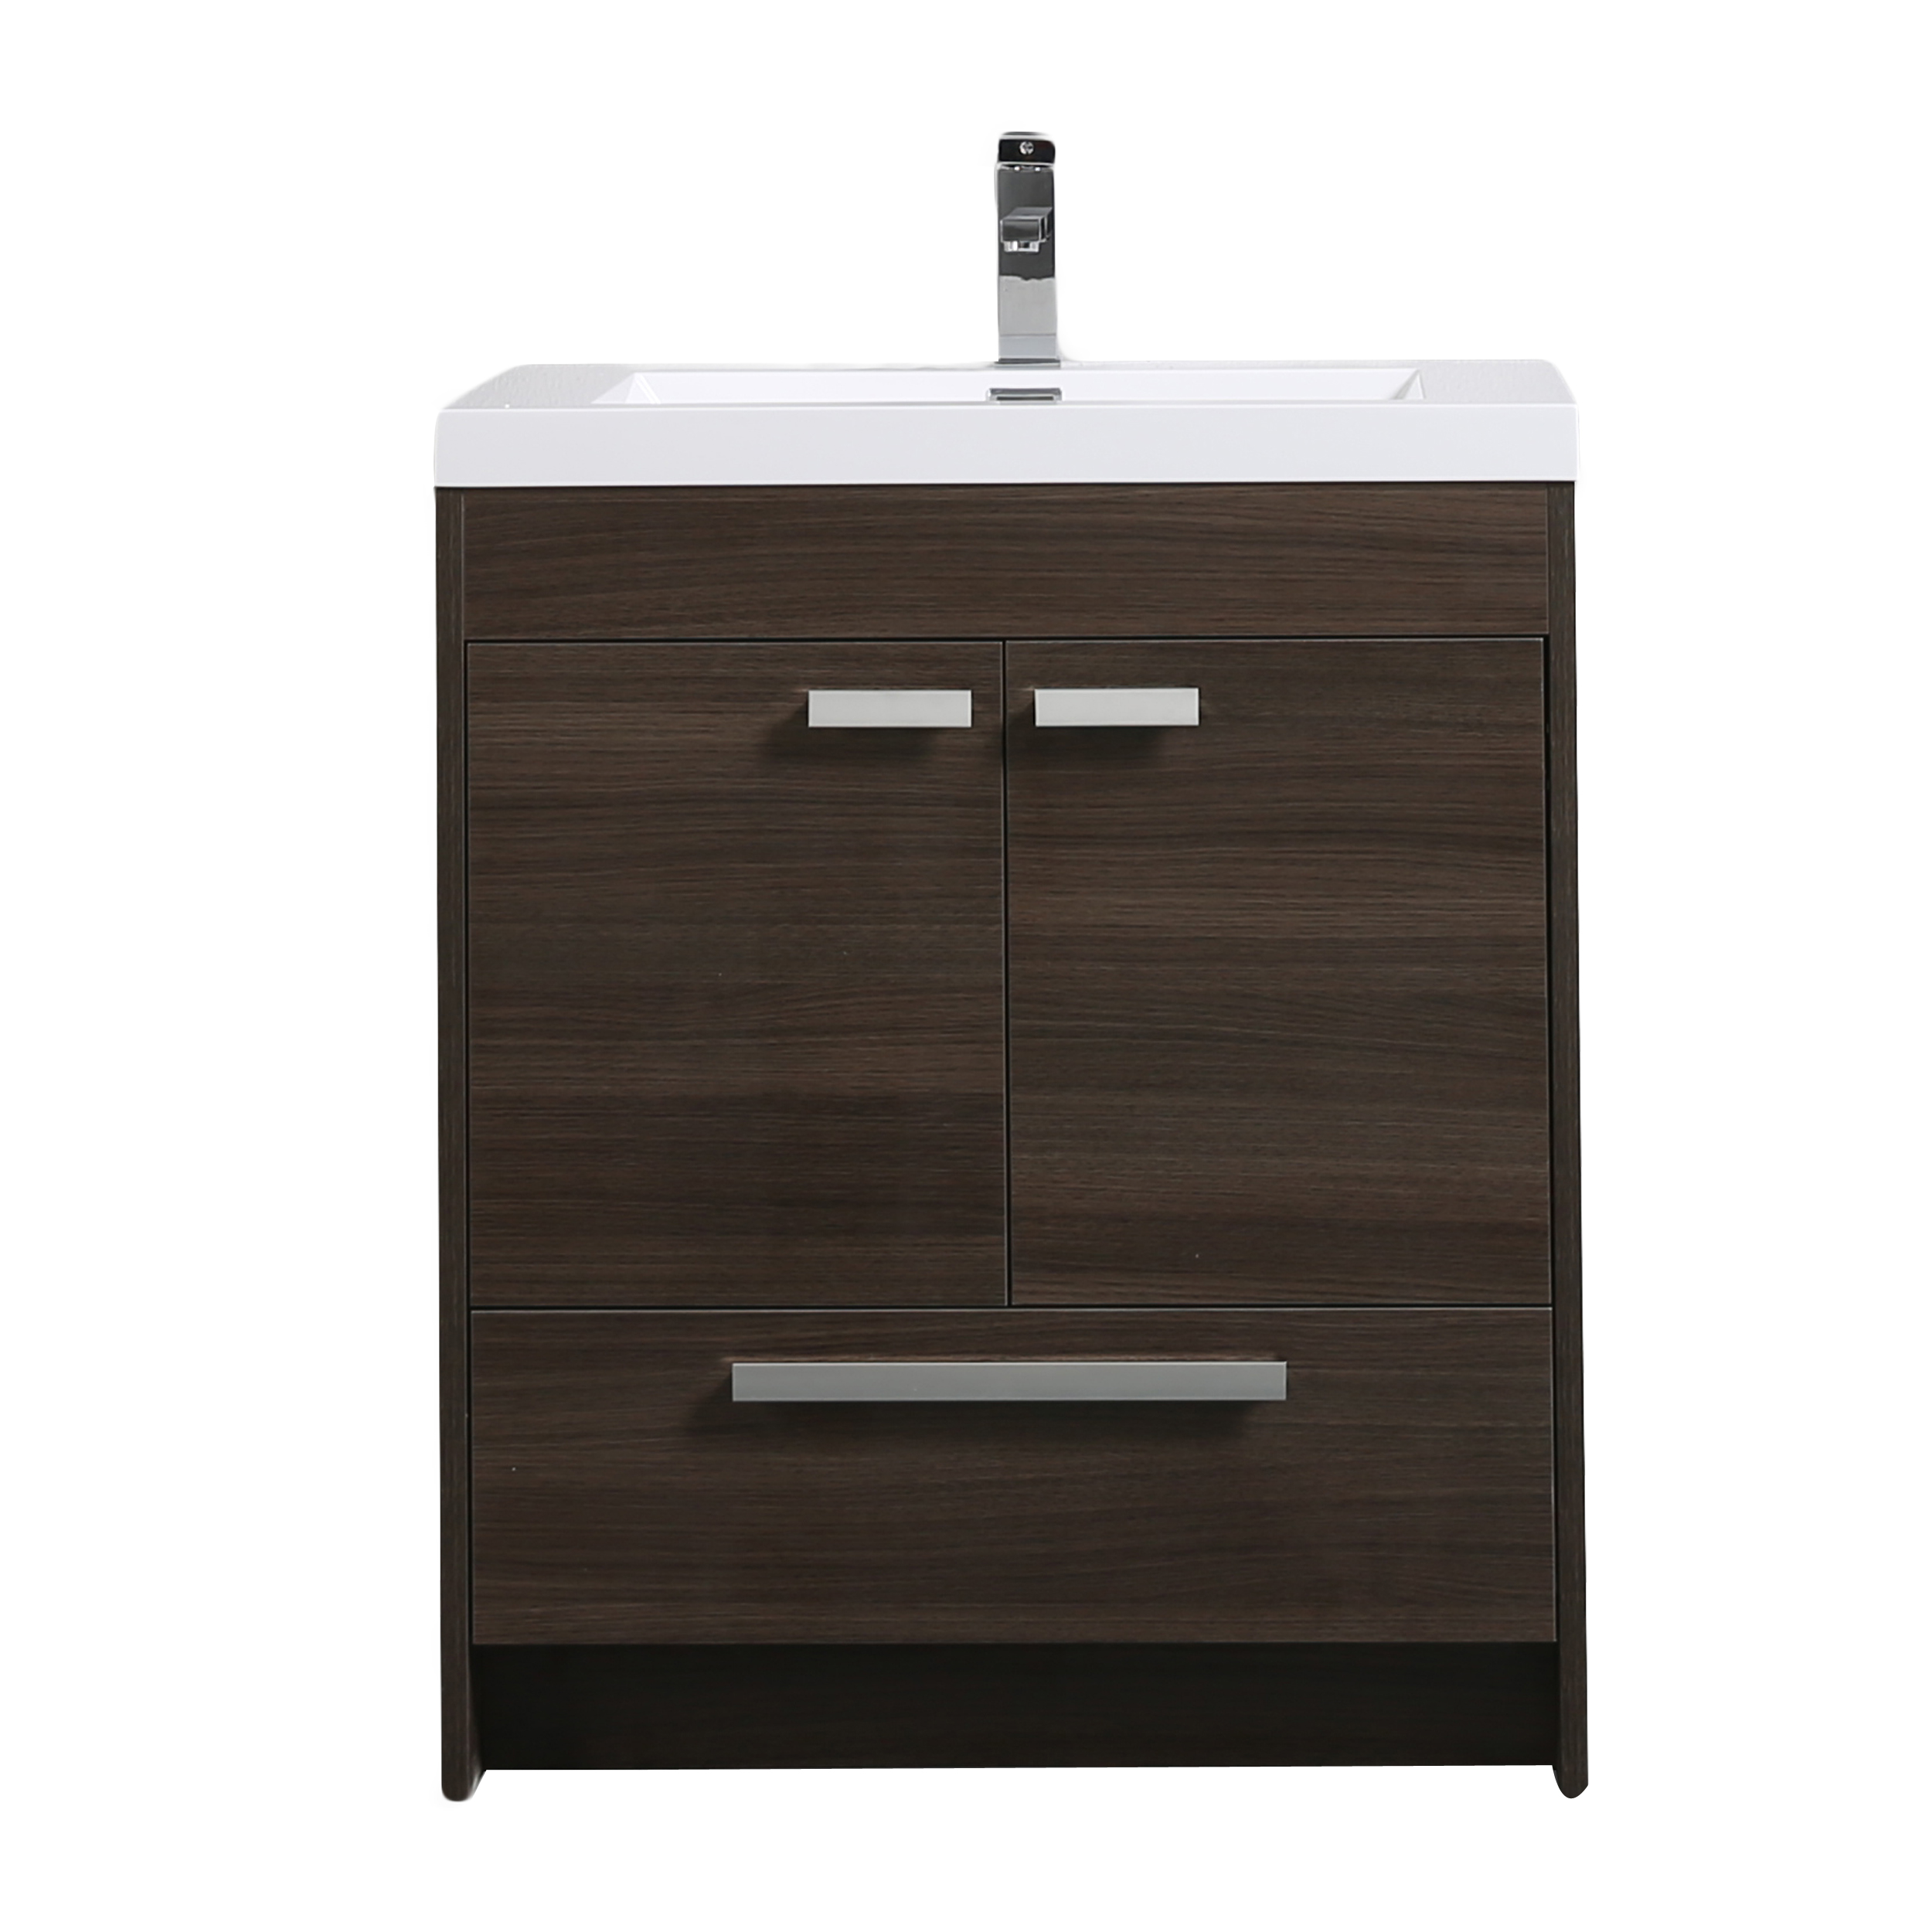 "EVVN750 3 30GOK A Main - Eviva Lugano 30"" Grey Oak Modern Bathroom Vanity with White Integrated Acrylic Sink"